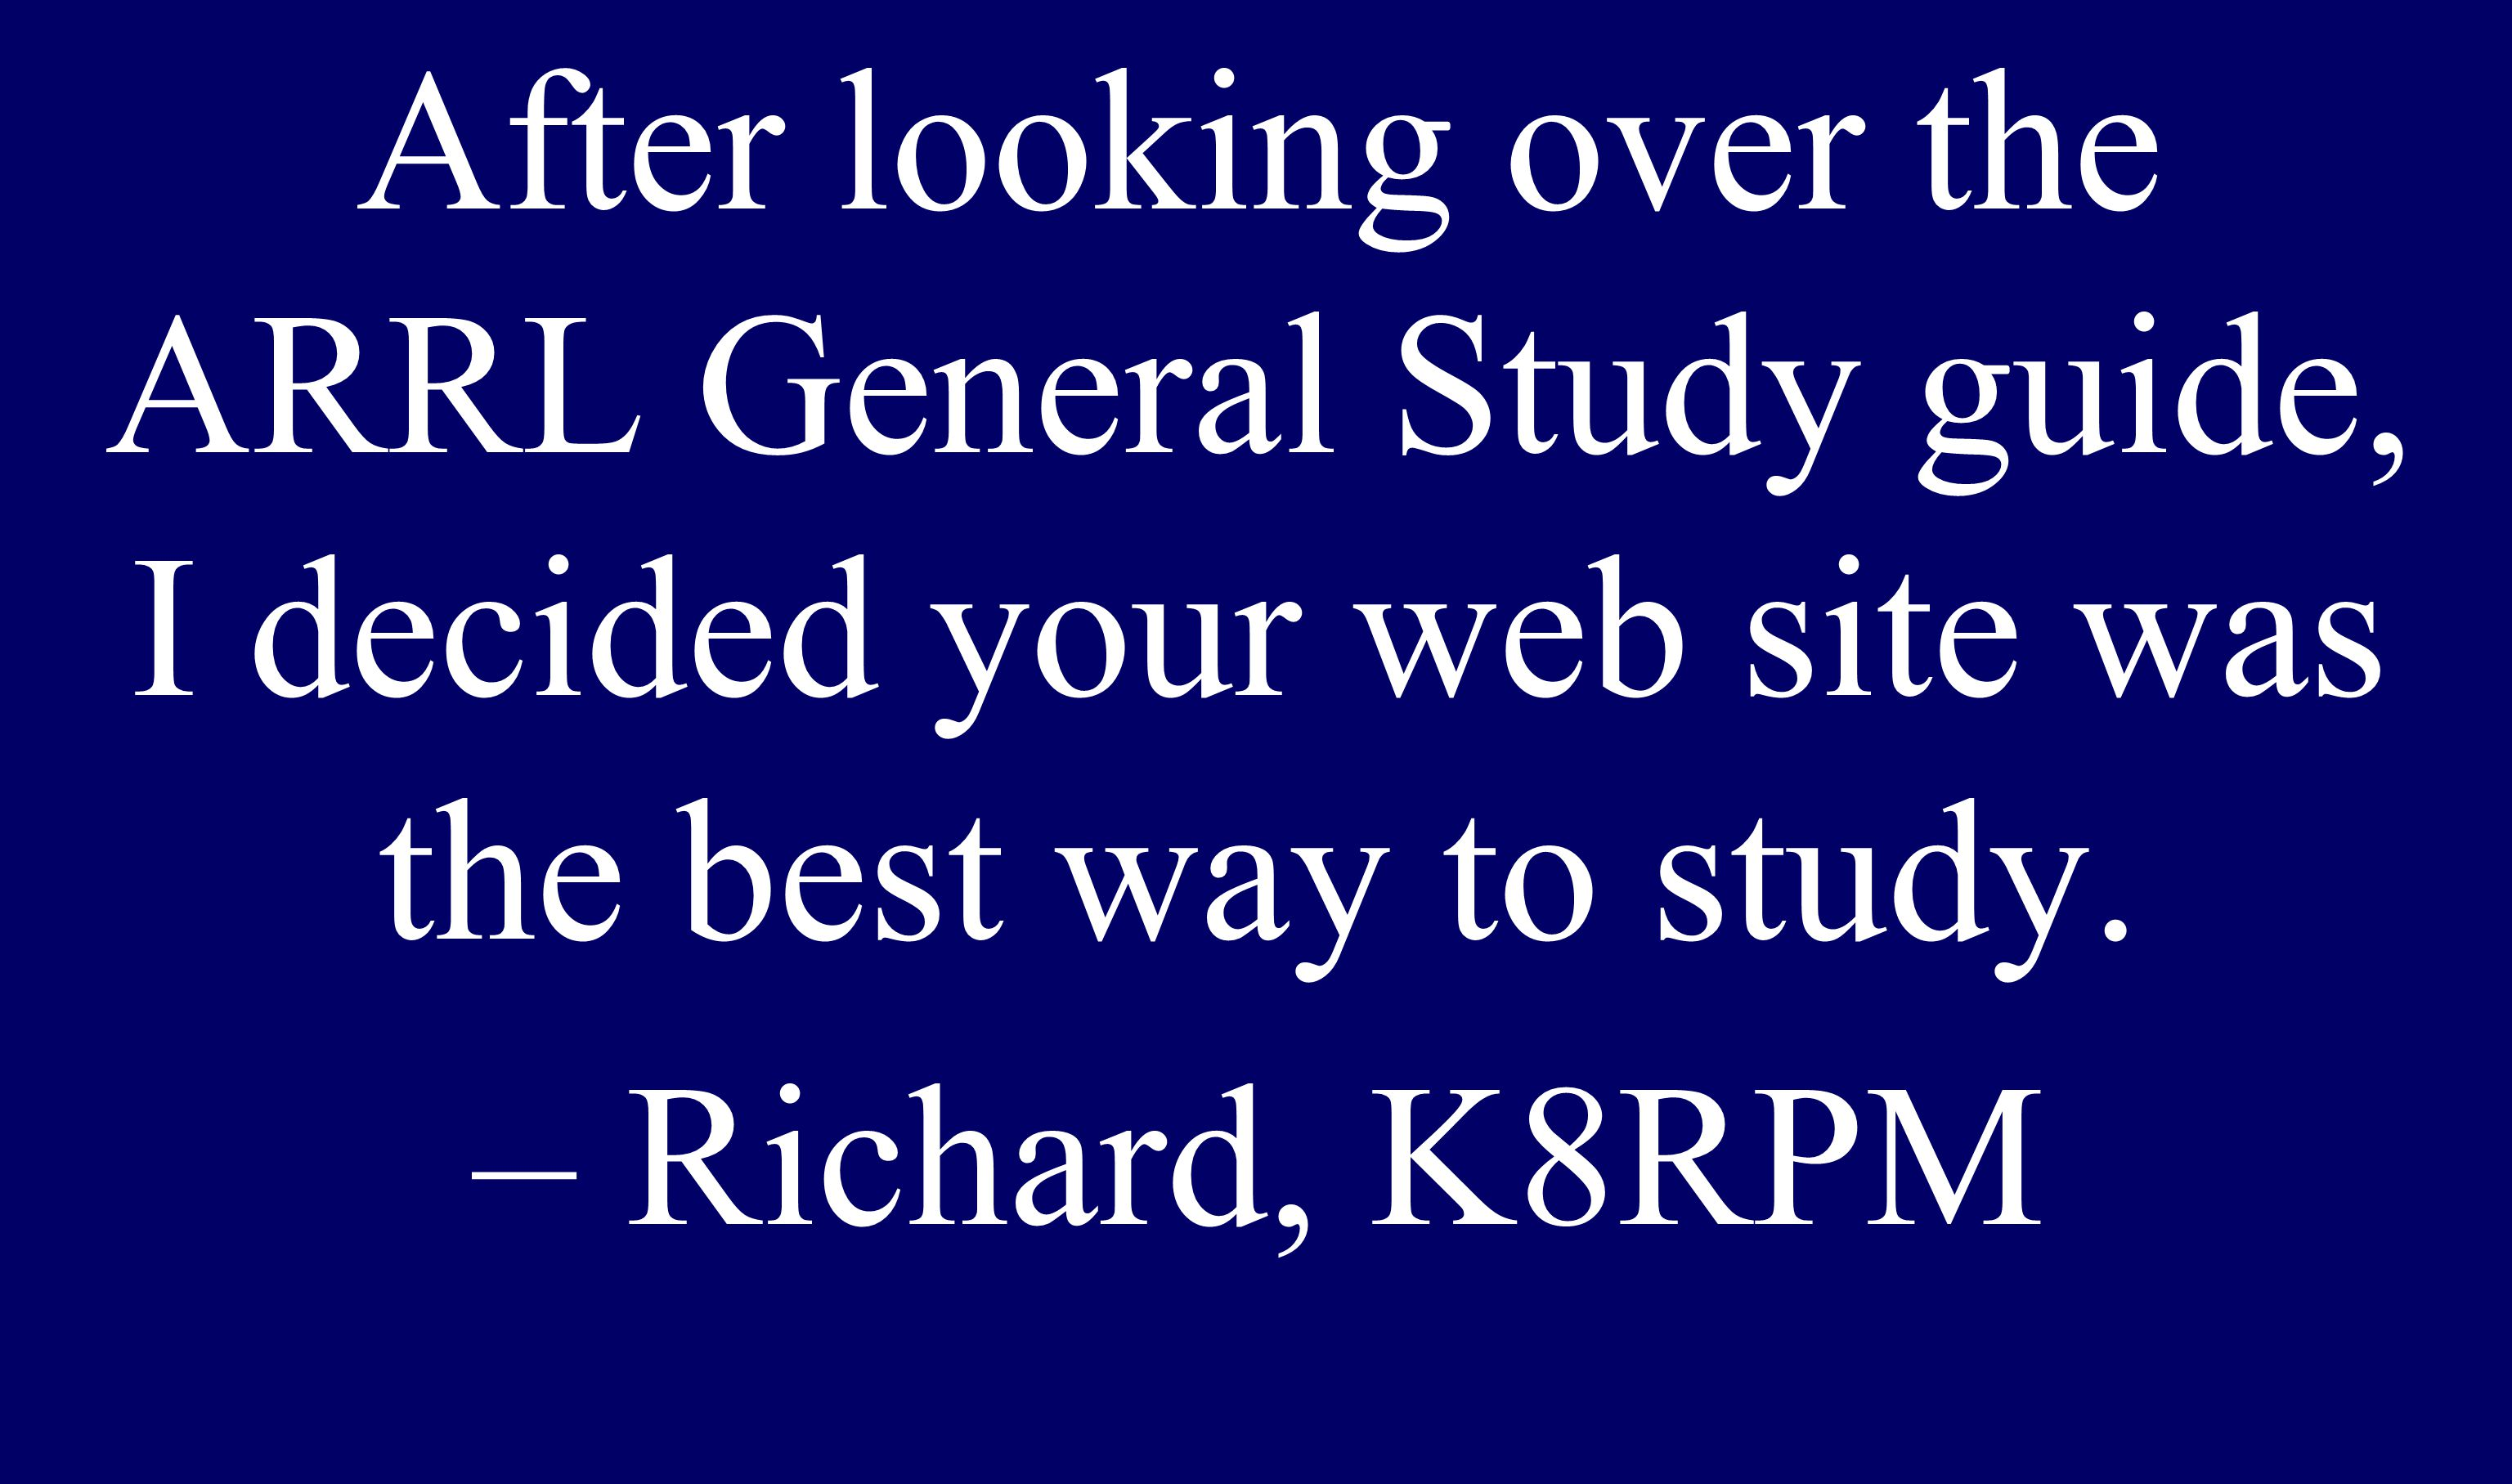 After looking over the ARRL General Study guide, I decided your web site was the best way to study. – Richard, K8RPM